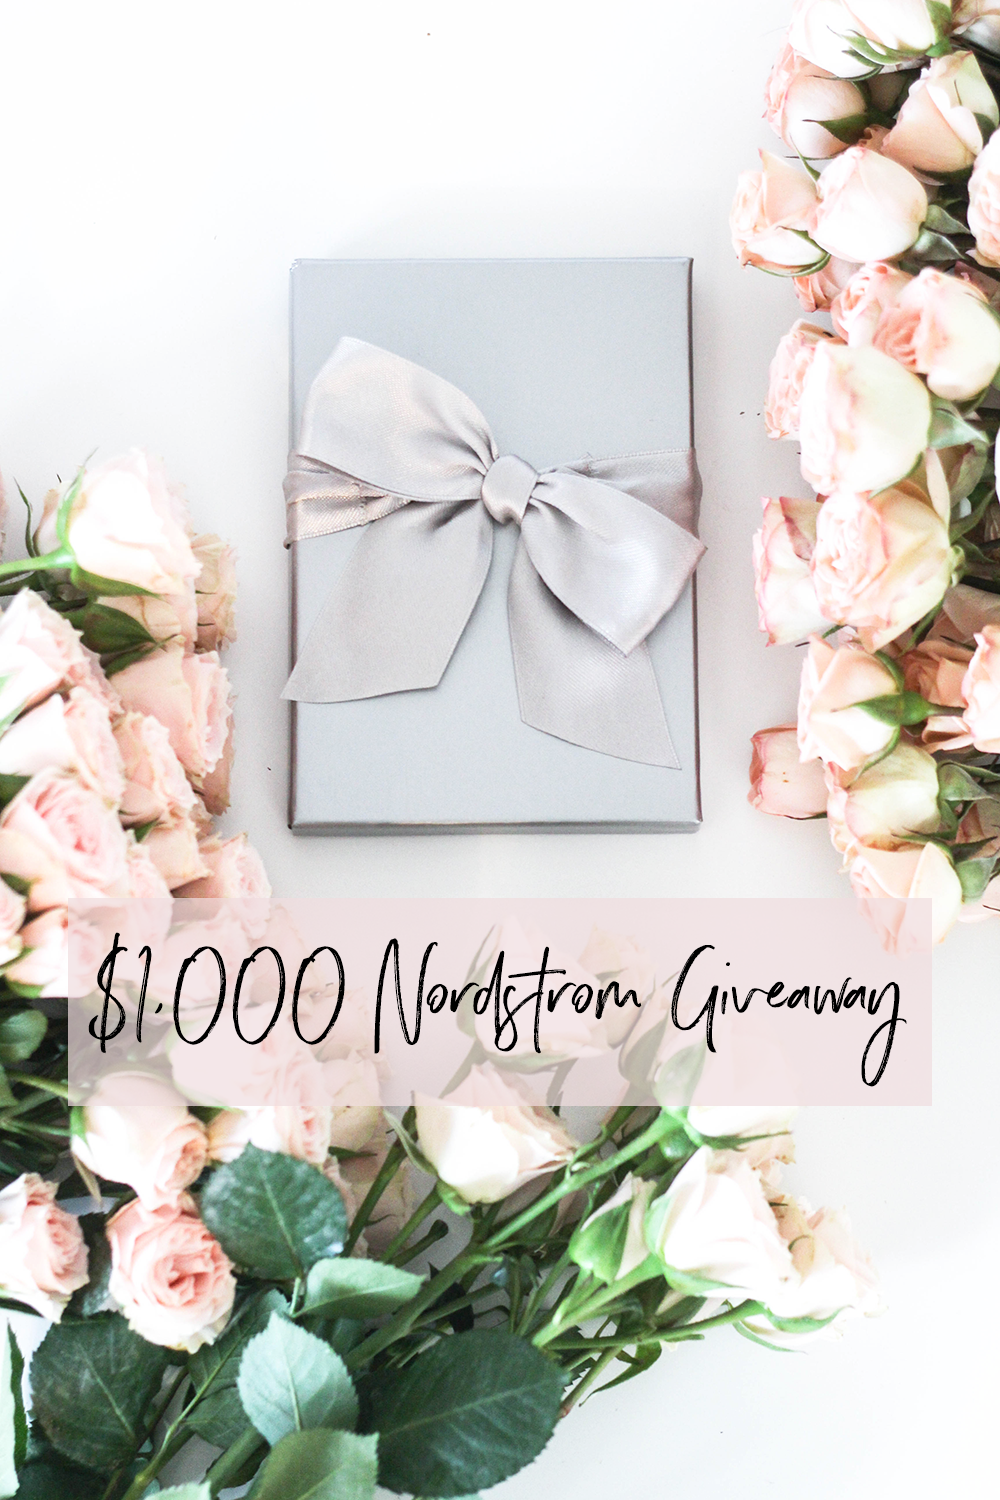 nordstrom sweepstakes 1 000 nordstrom giveaway mrscasual 3590